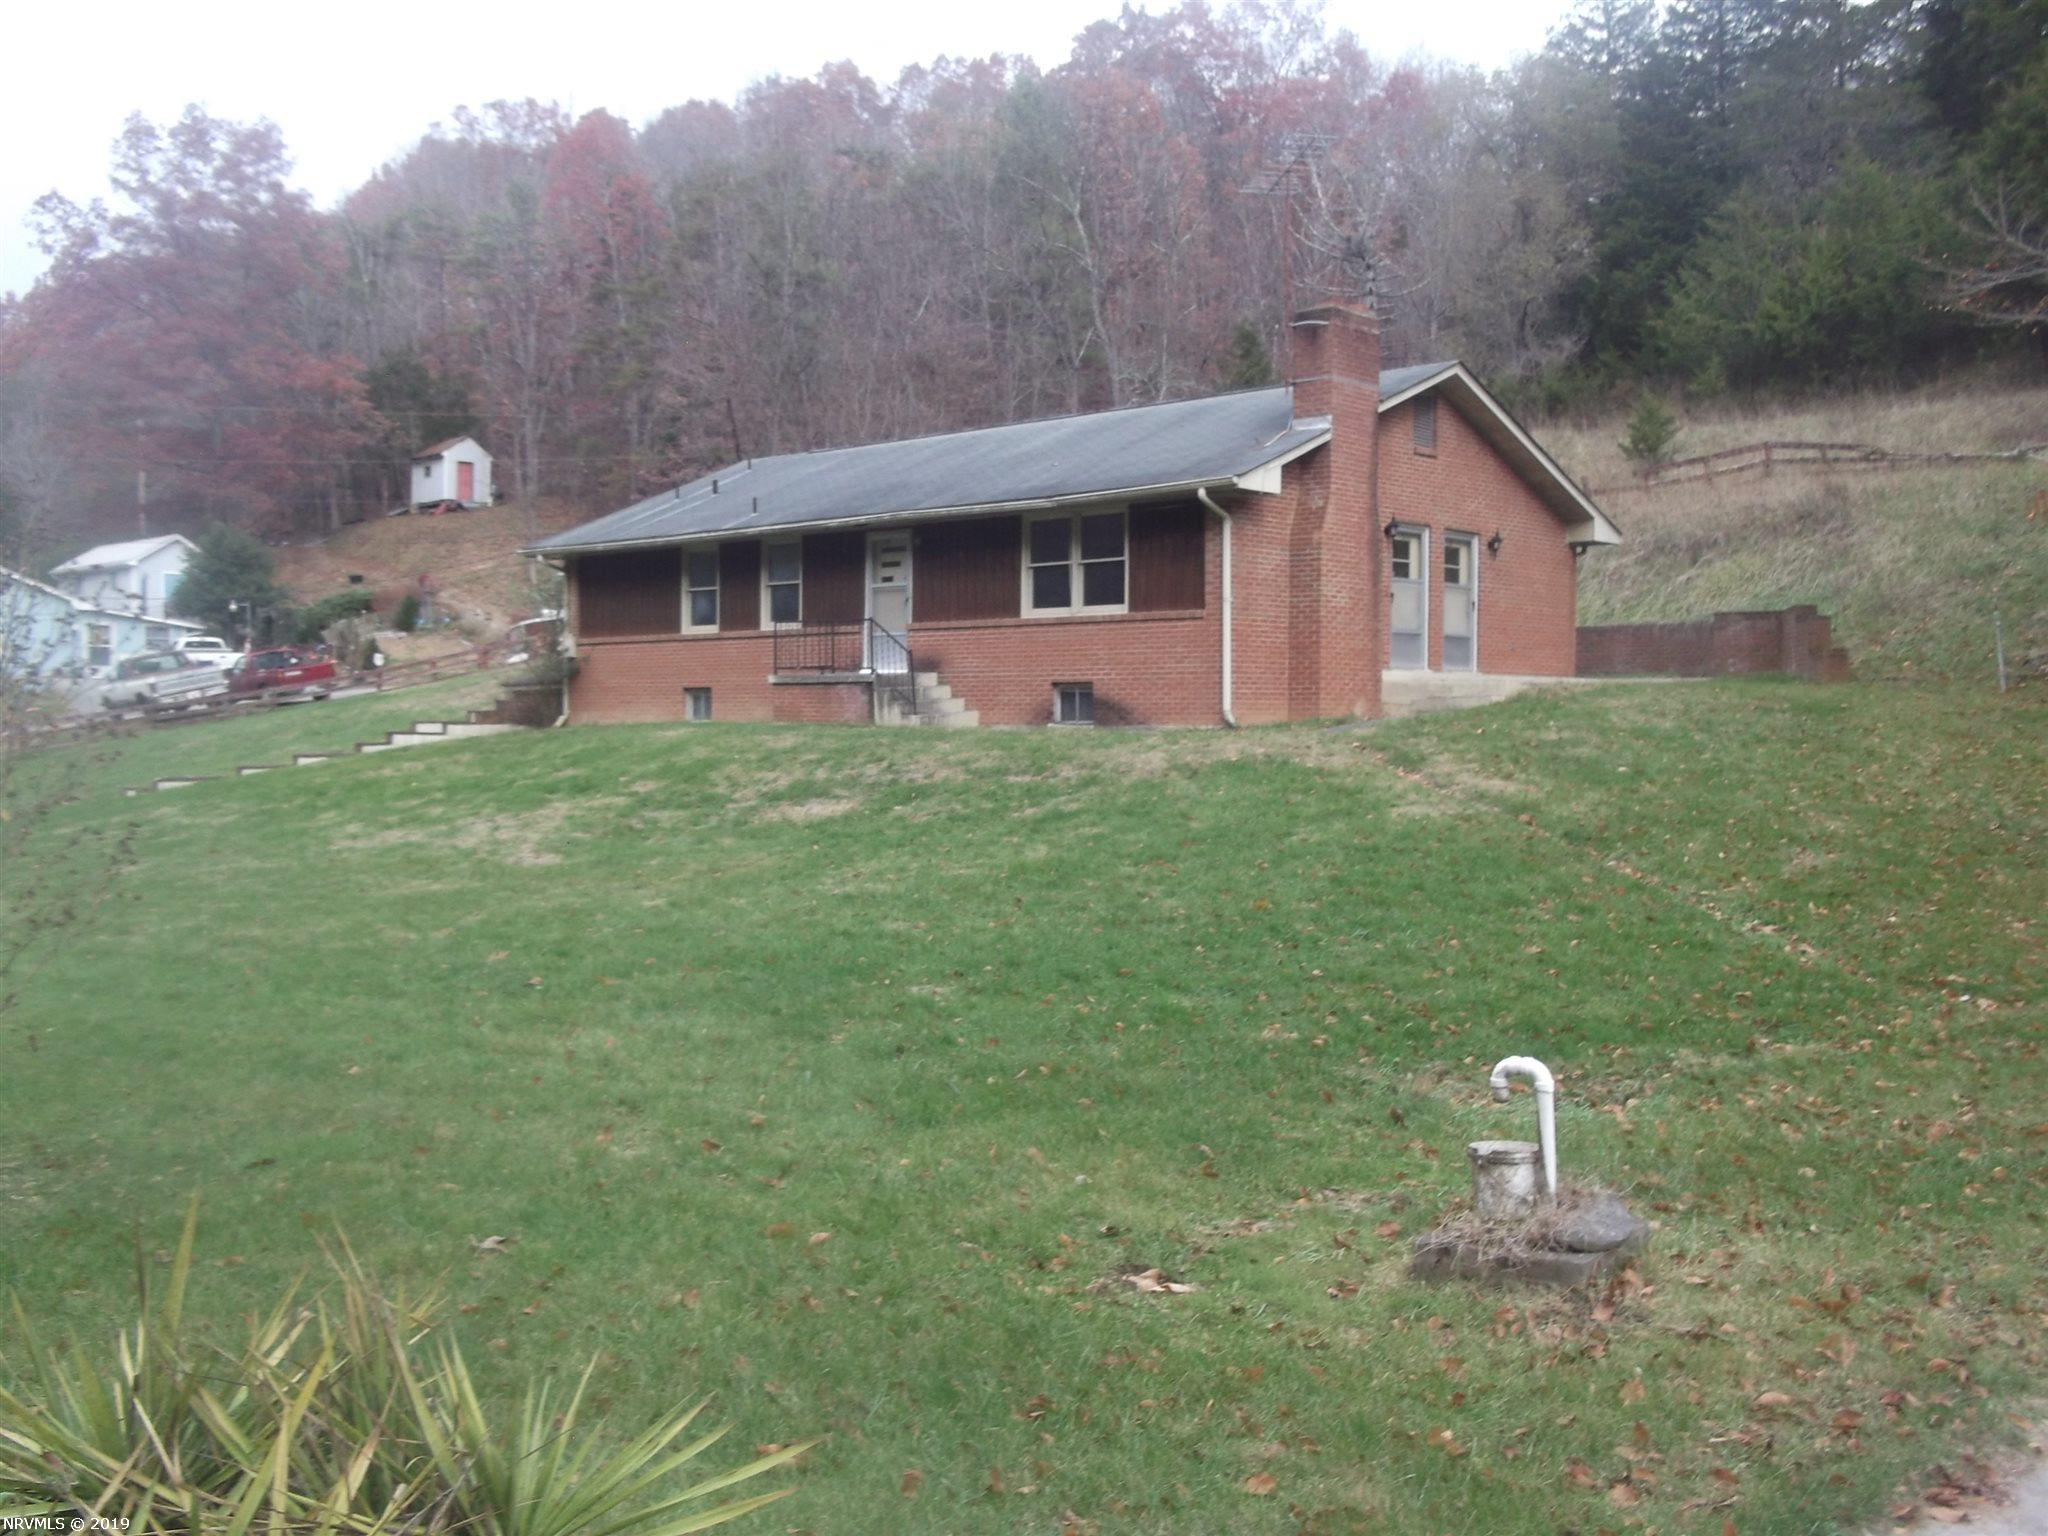 Affordable brick home on 2 acres.  Large living room with masonry fireplace.  The house interior has the original colors and paneling from when it was built but the home has been well cared for.  It is in Move in Condition. The large yard has a detached garage and a small stream across the front.